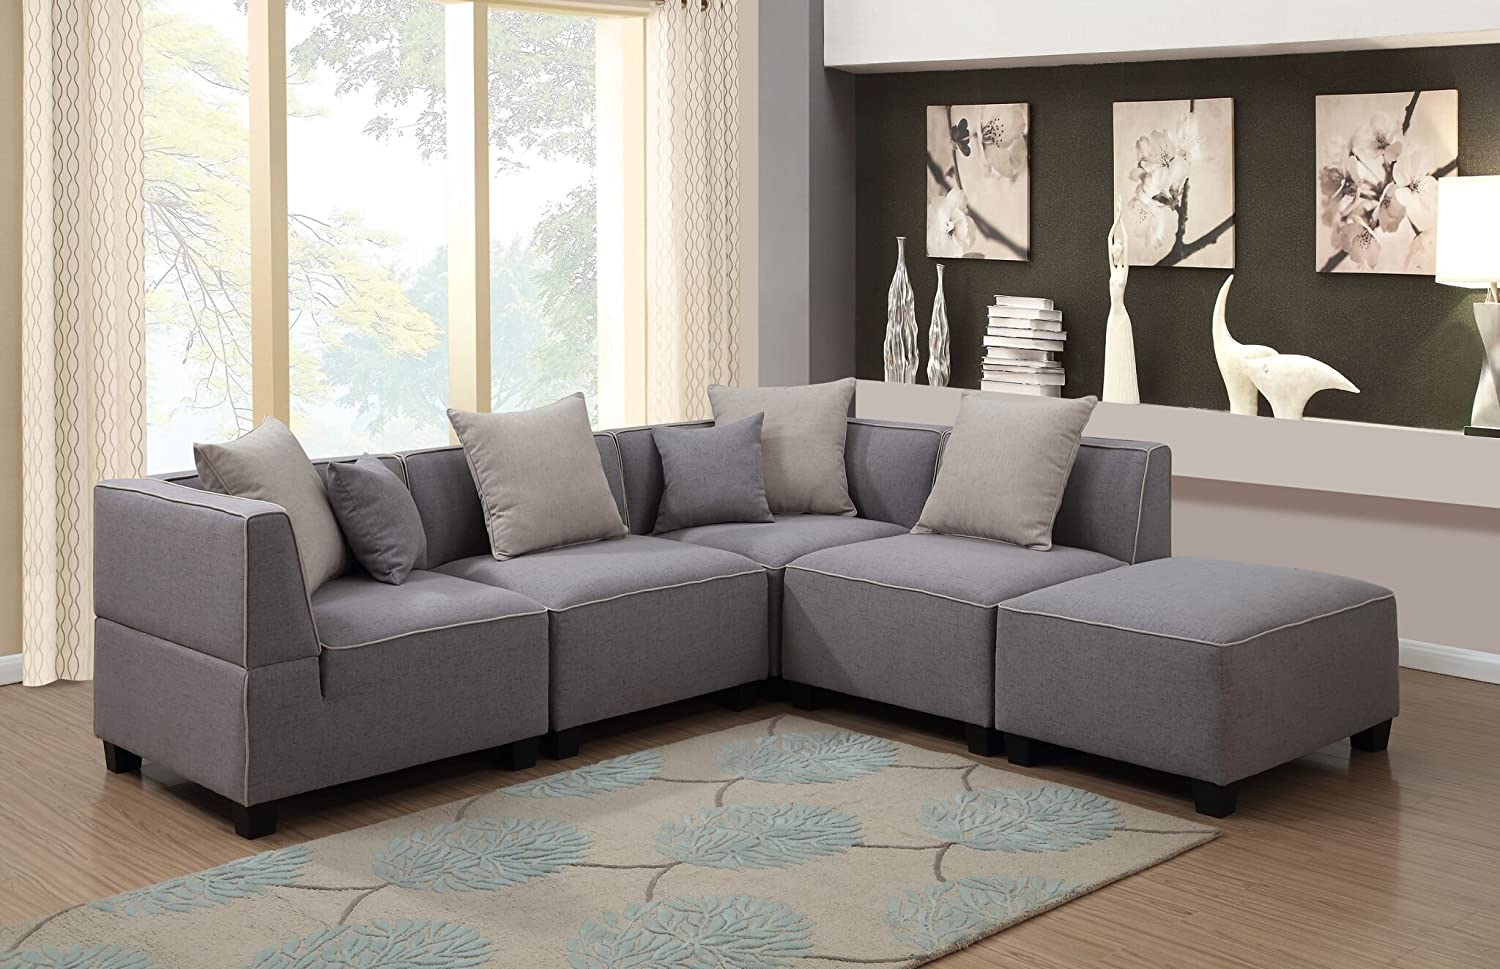 Amazon.com: AC Pacific 5 Piece Holly Collection Modern Linen Fabric  Upholstered L Shaped Living Room Tuxedo Sectional Sofa And Ottoman, Grey:  Kitchen U0026 ...